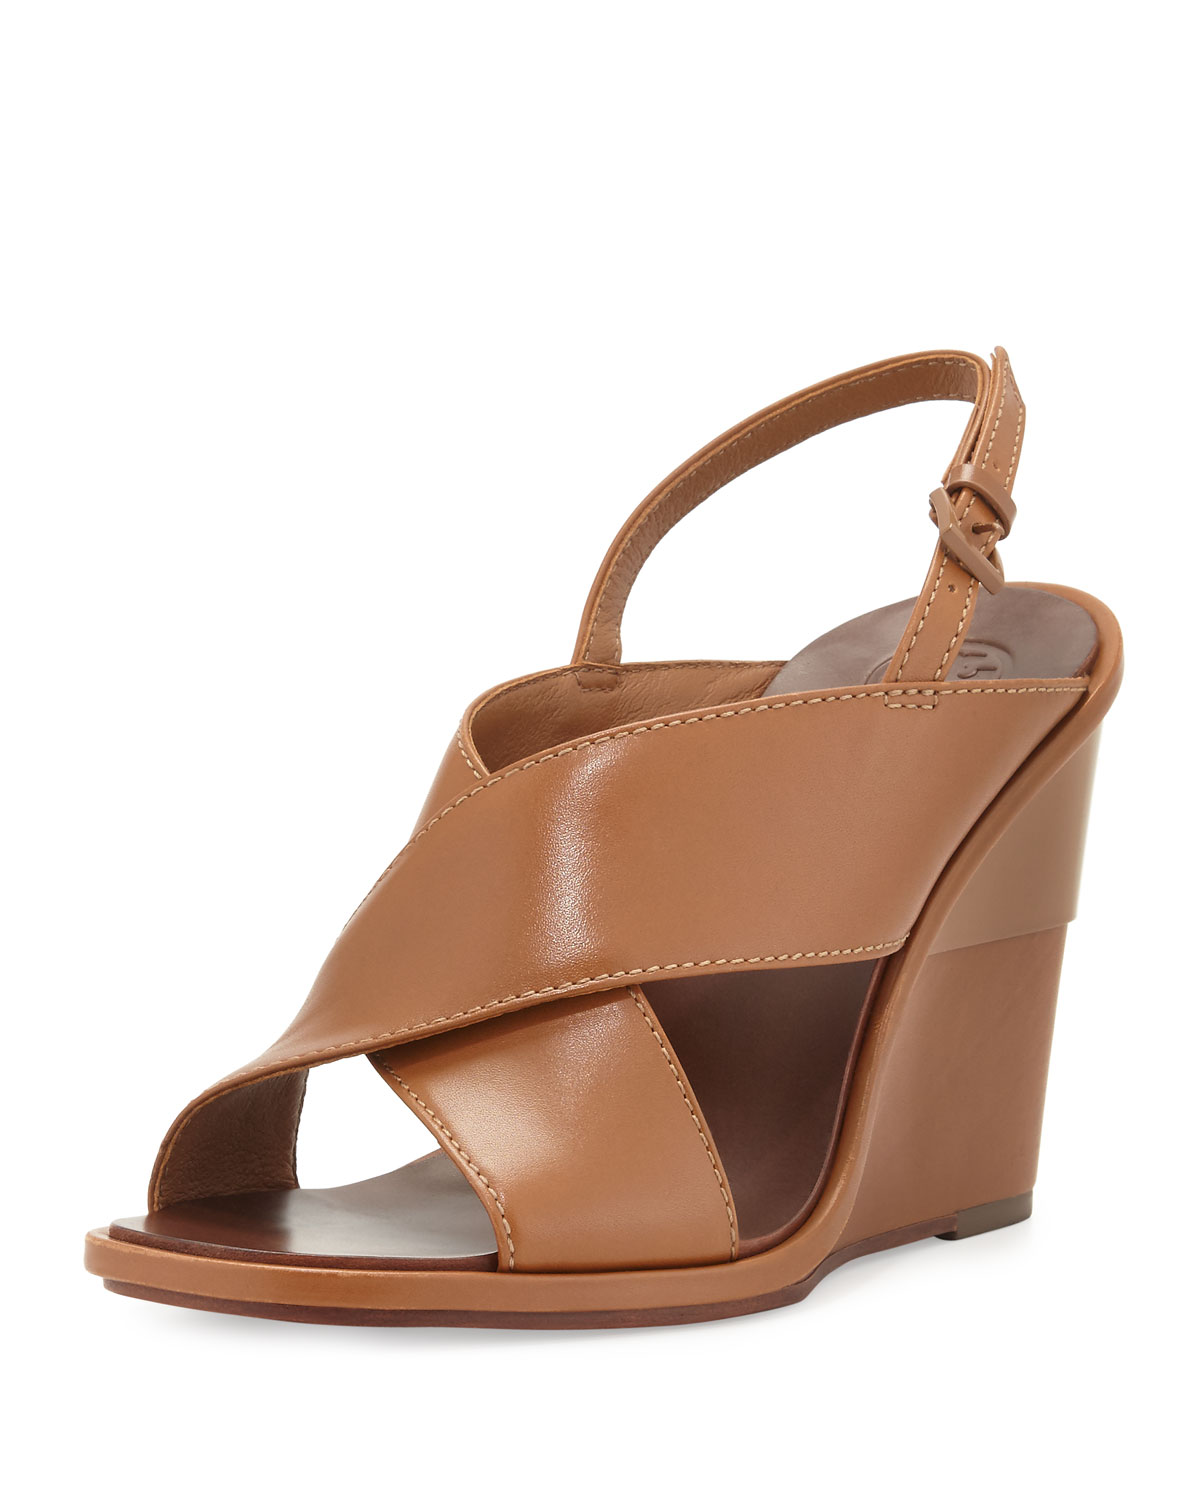 cadf7cef47fe Tory Burch Gabrielle Leather Wedge Sandal